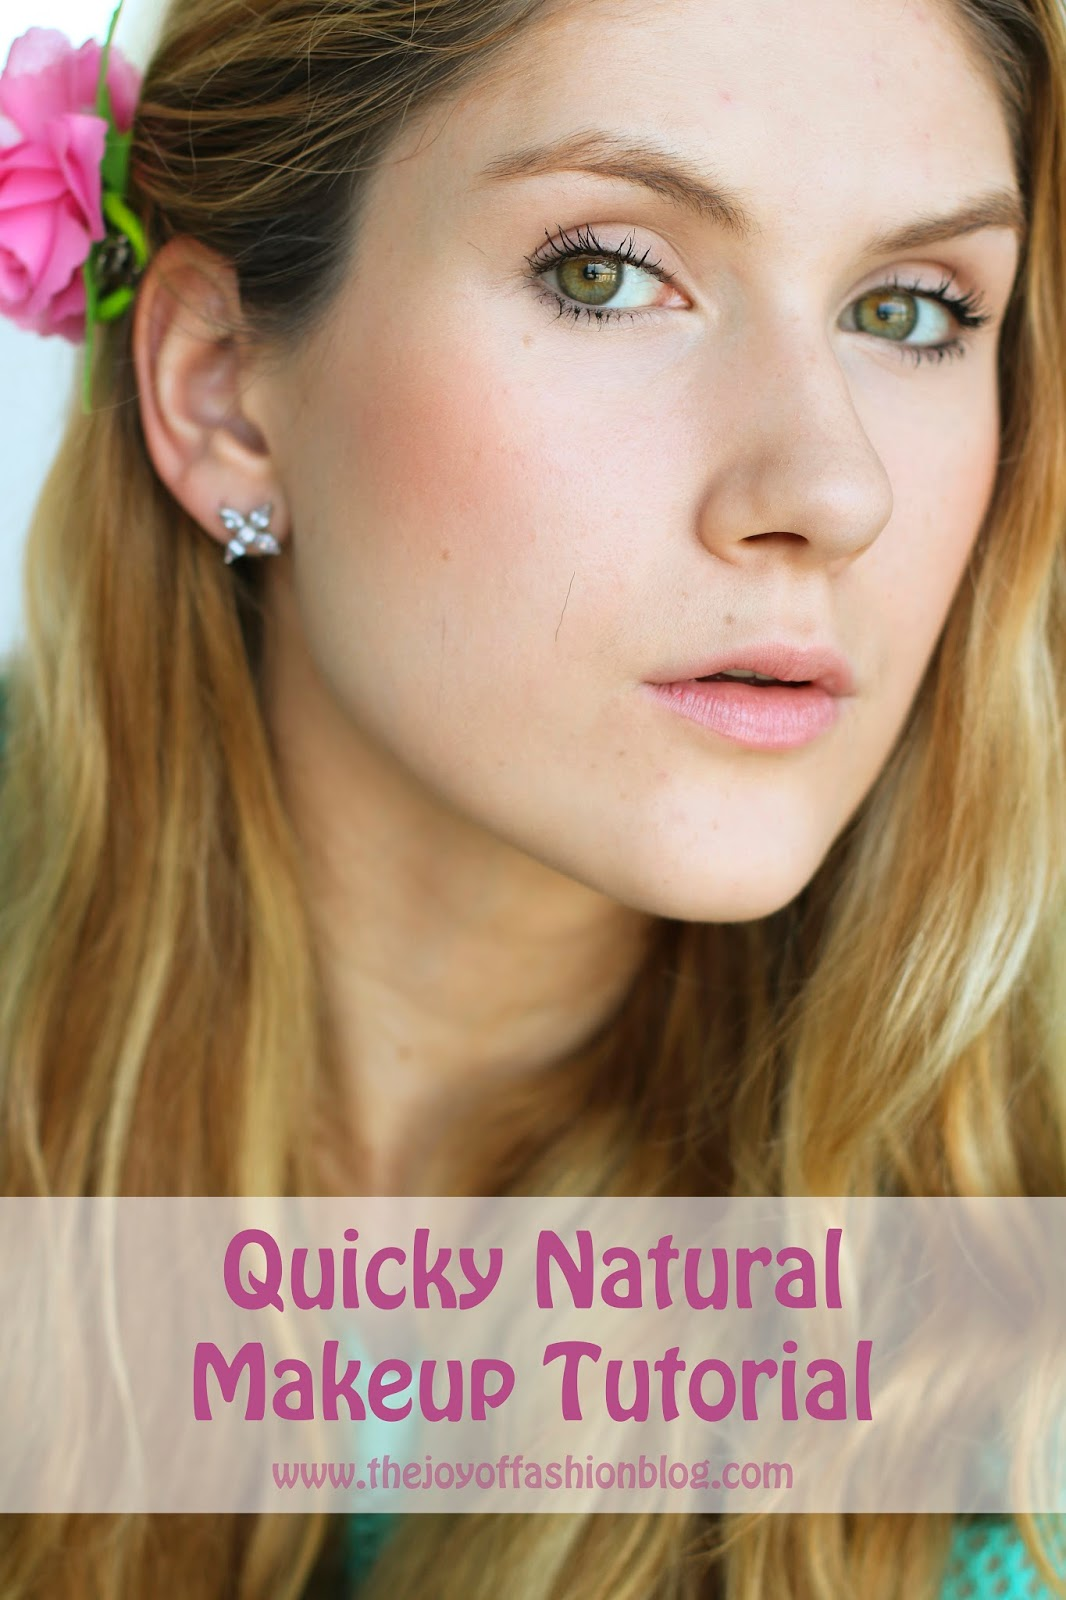 Click through for a quick and easy natural makeup tutorial!